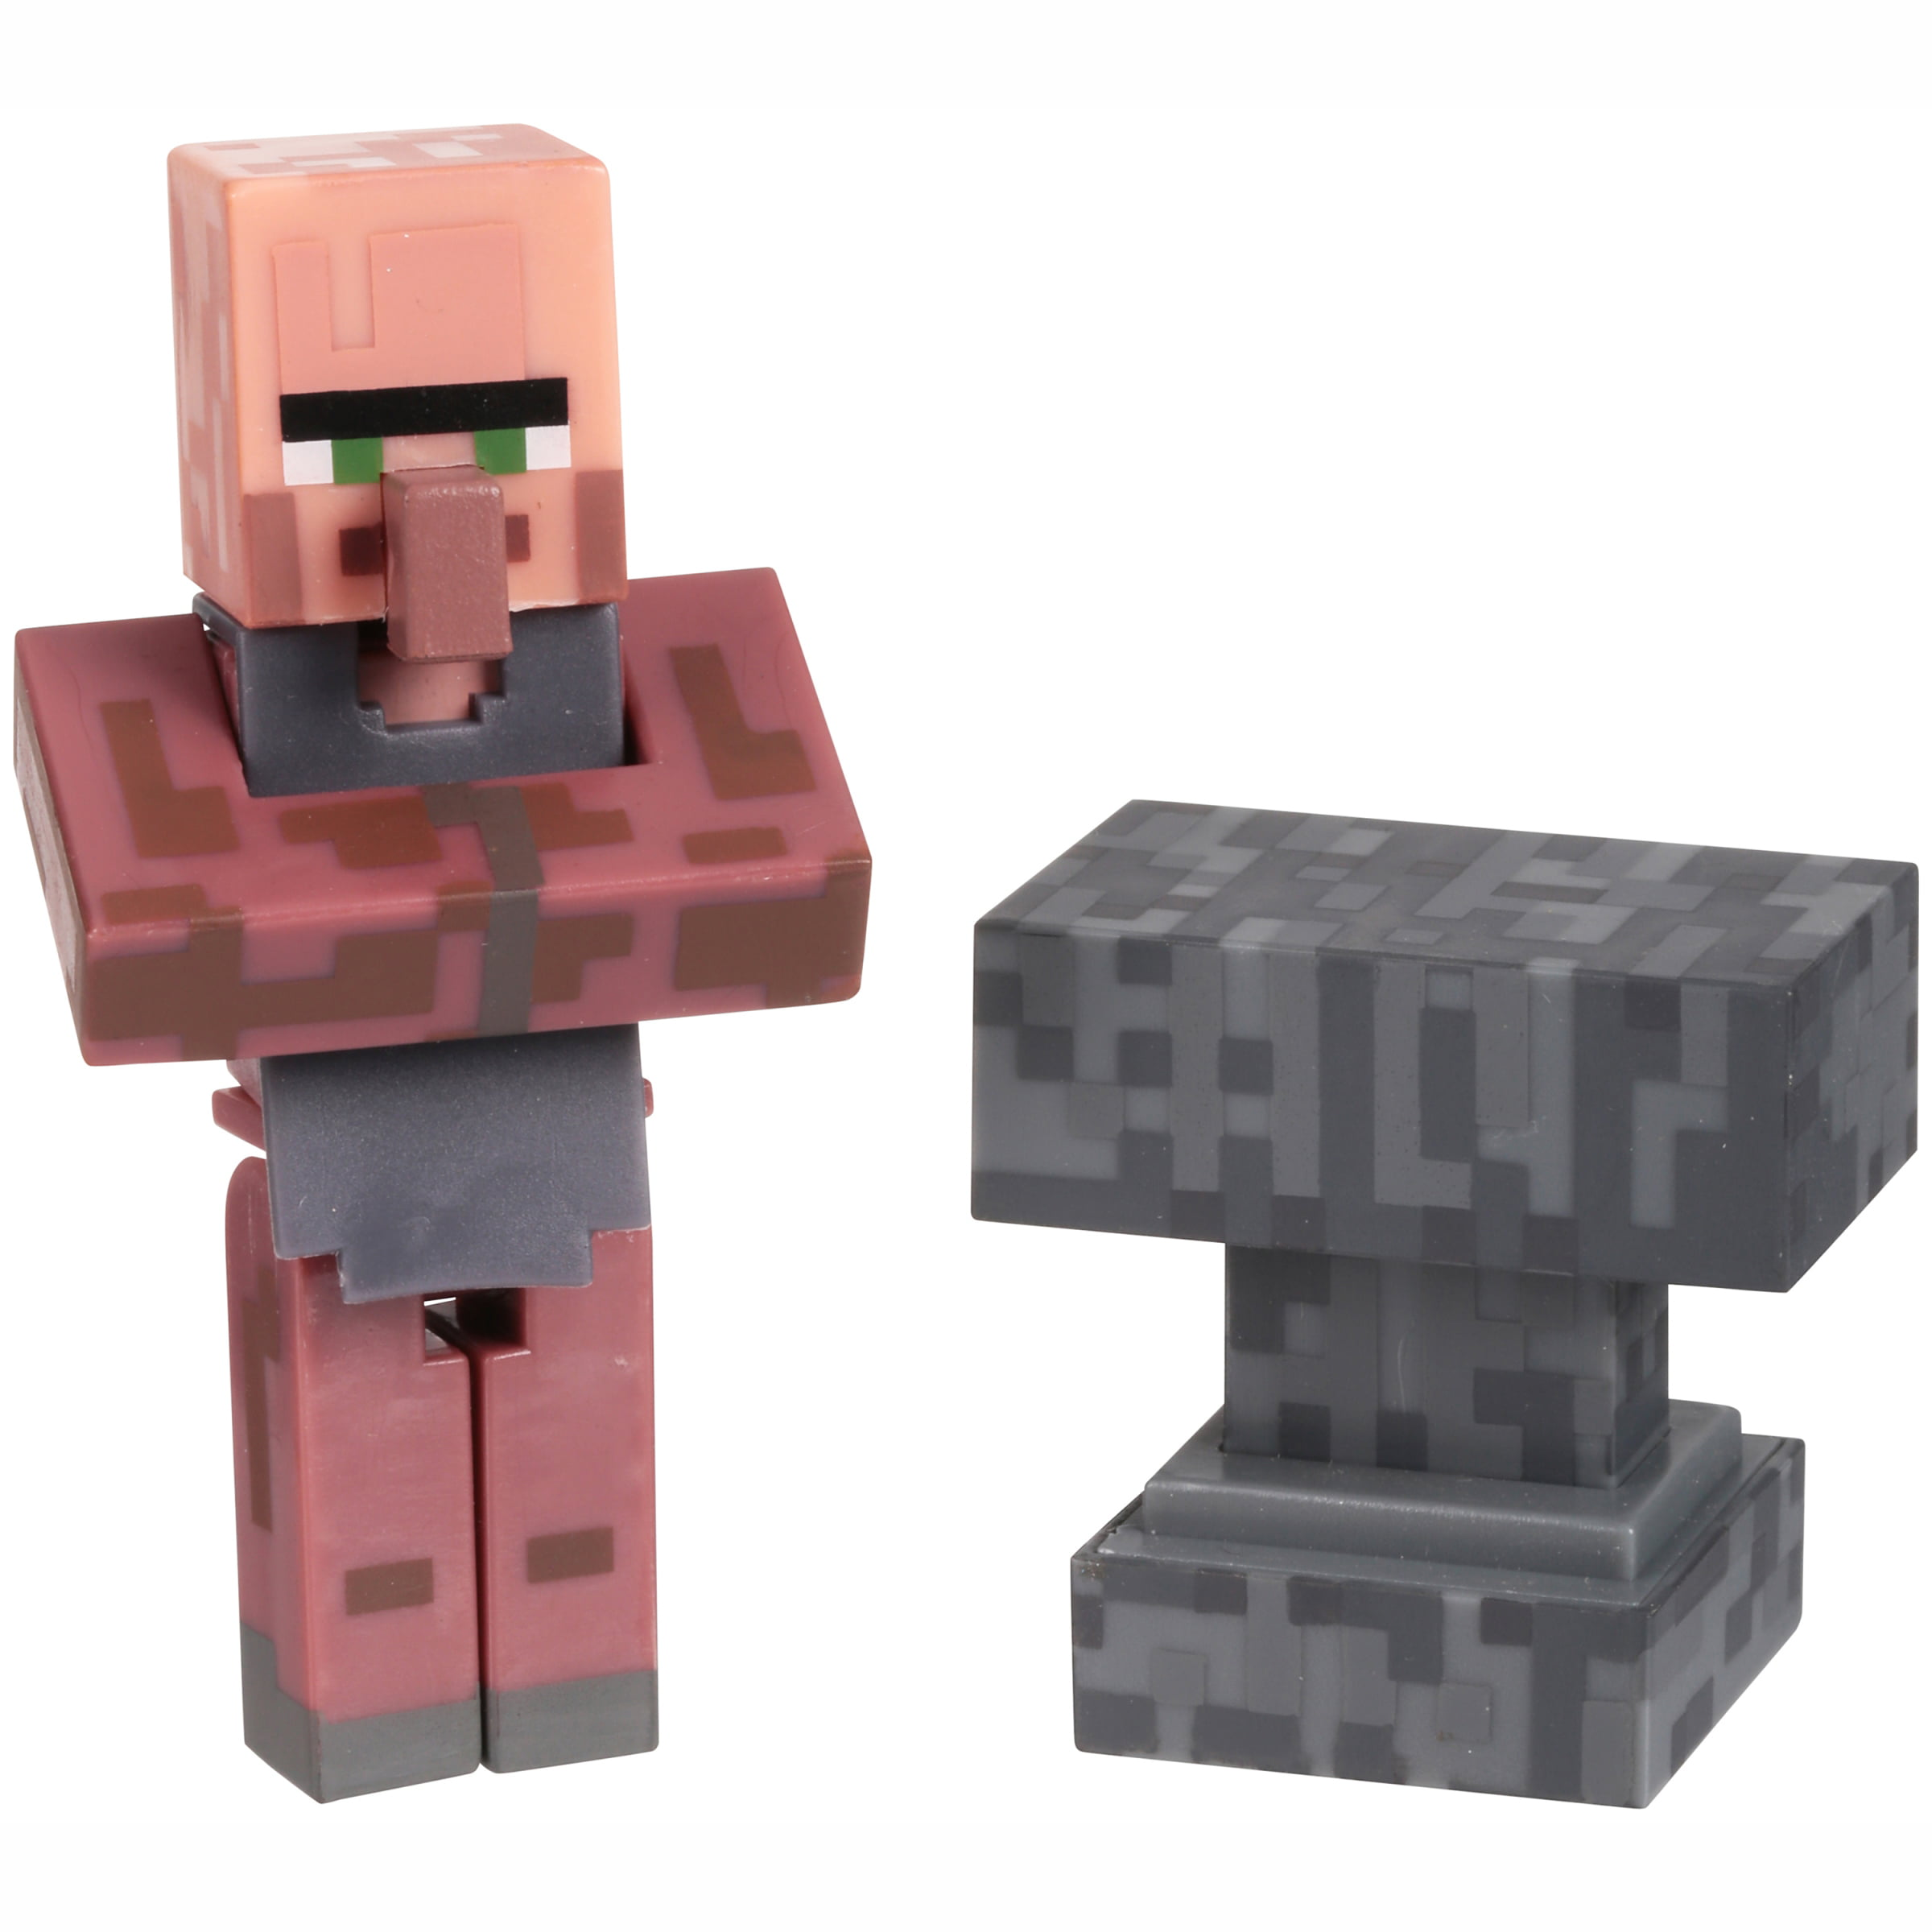 Minecraft Series #2 Overworld Villager Blacksmith 2 pc Carded Pack by Jazwares, LLC.